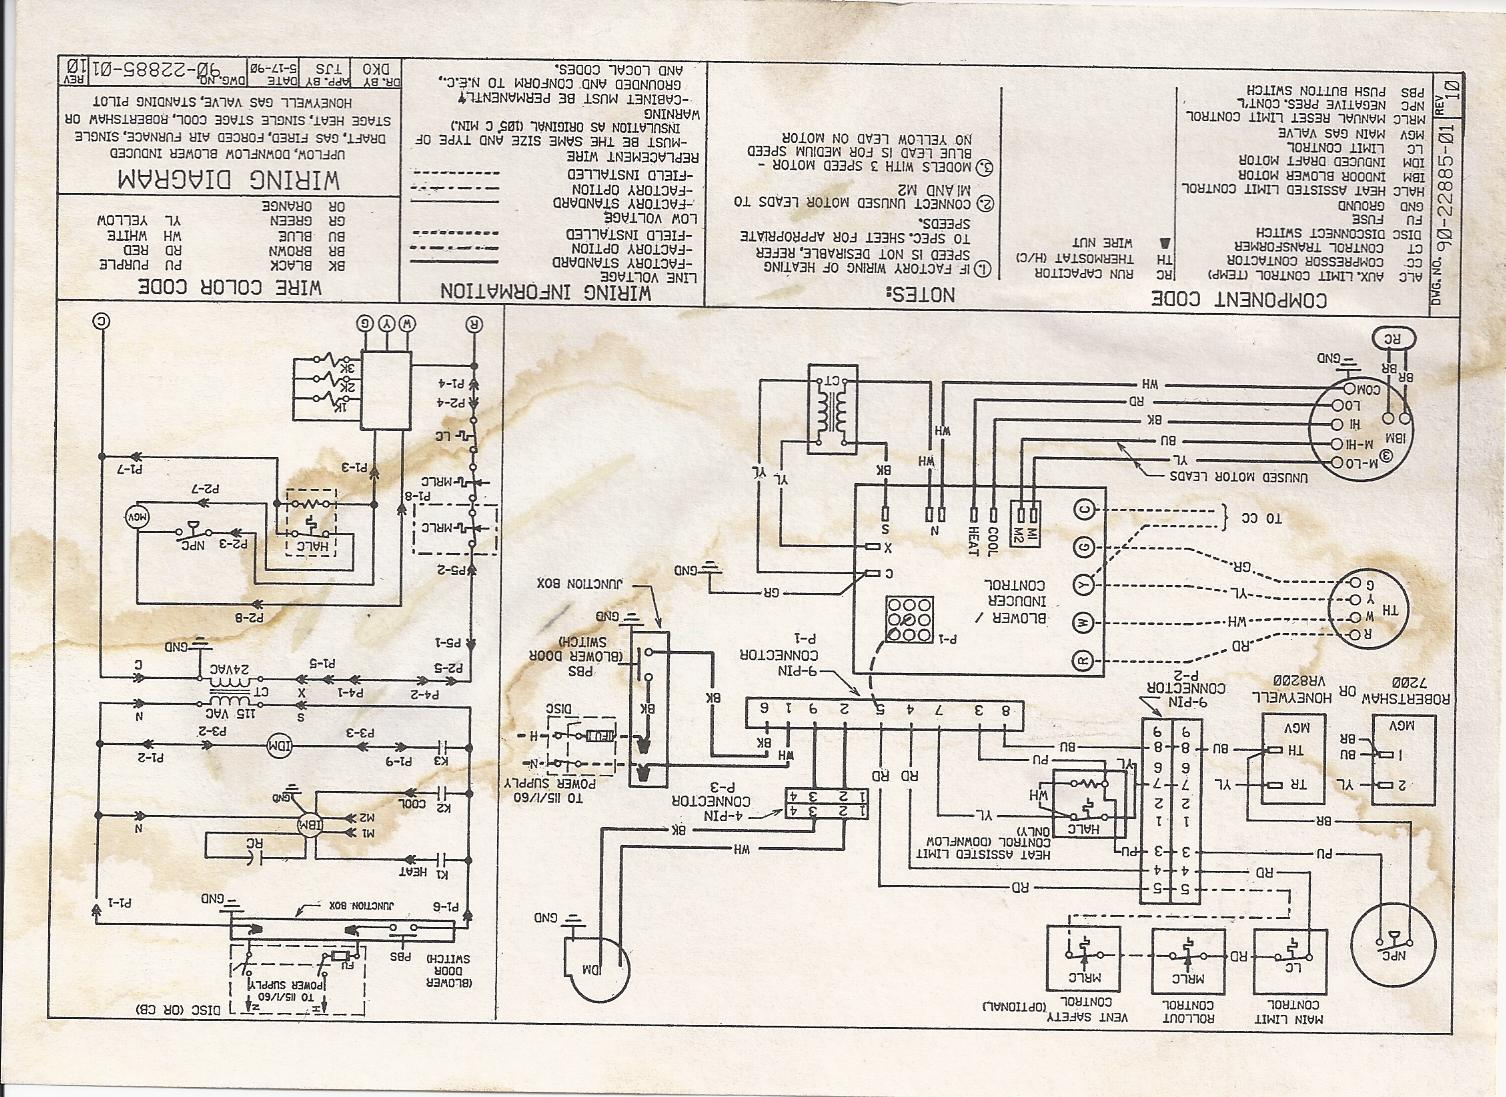 Rheem Air Conditioning Wiring Diagram Simple Schema Basic Furnace Schematic Ac Diagrams Coleman Conditioner